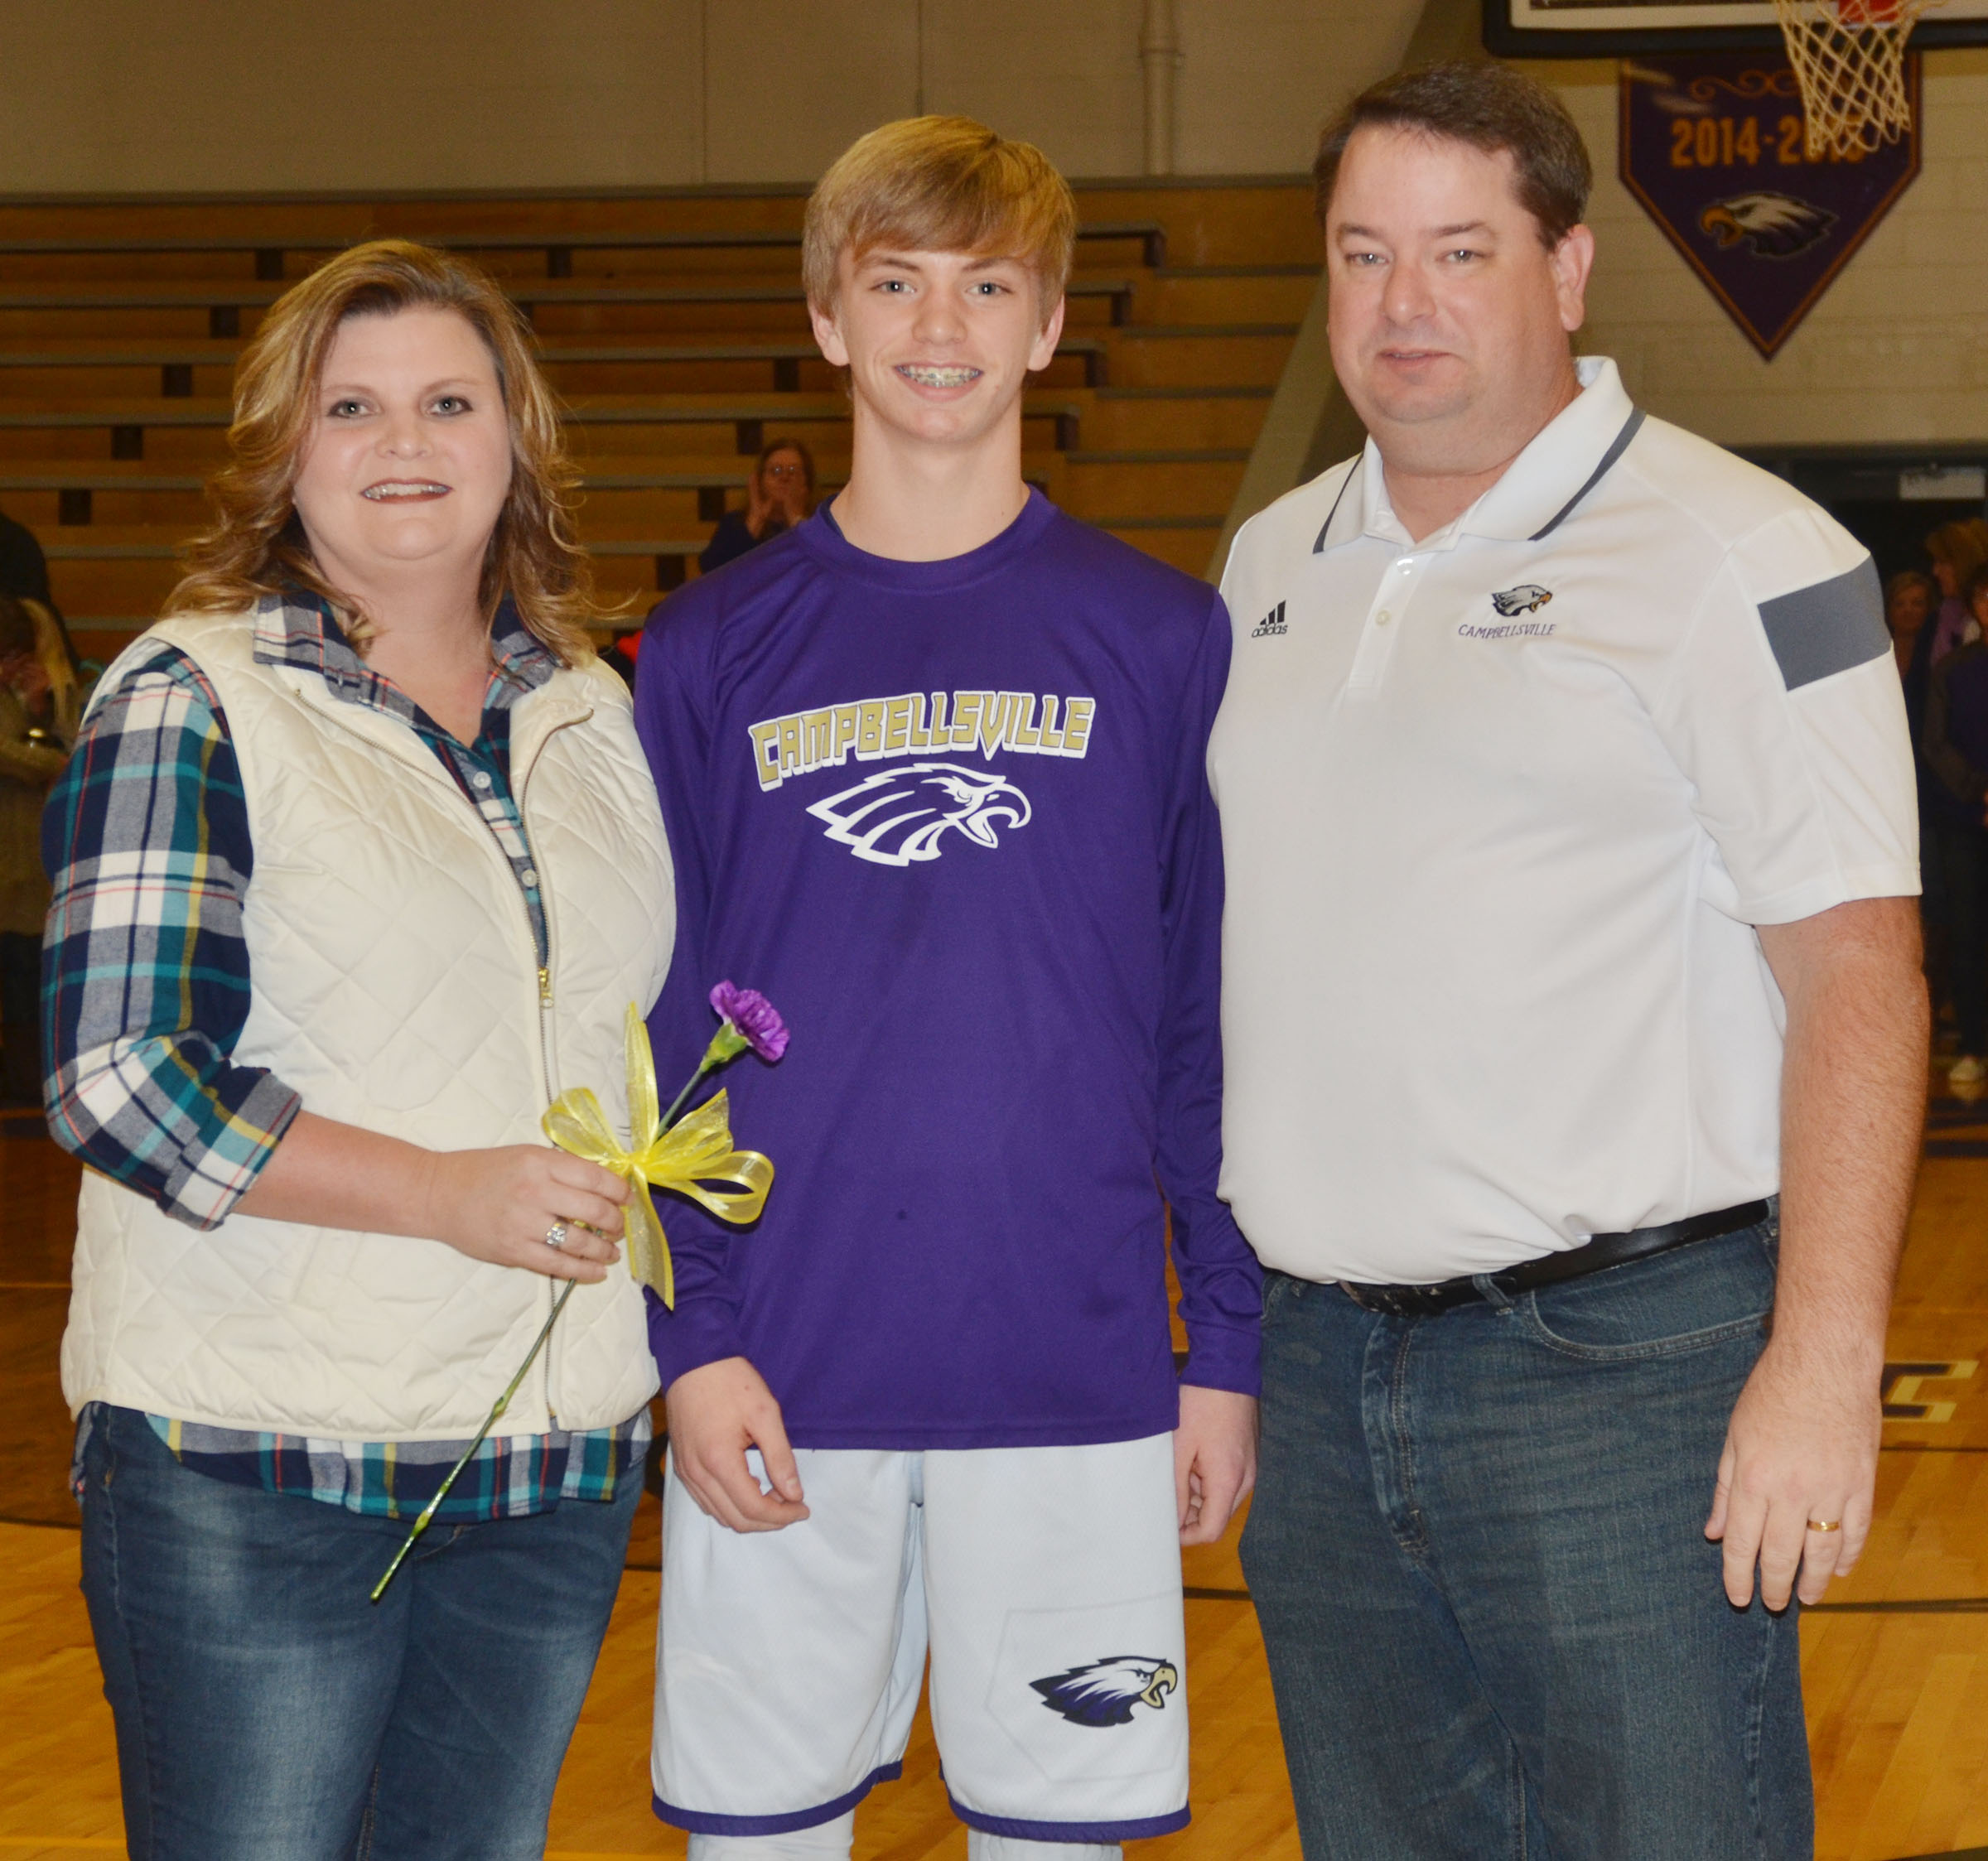 CMS eighth-grader Arren Hash is honored. He is pictured with his parents, Tammy and Garin.